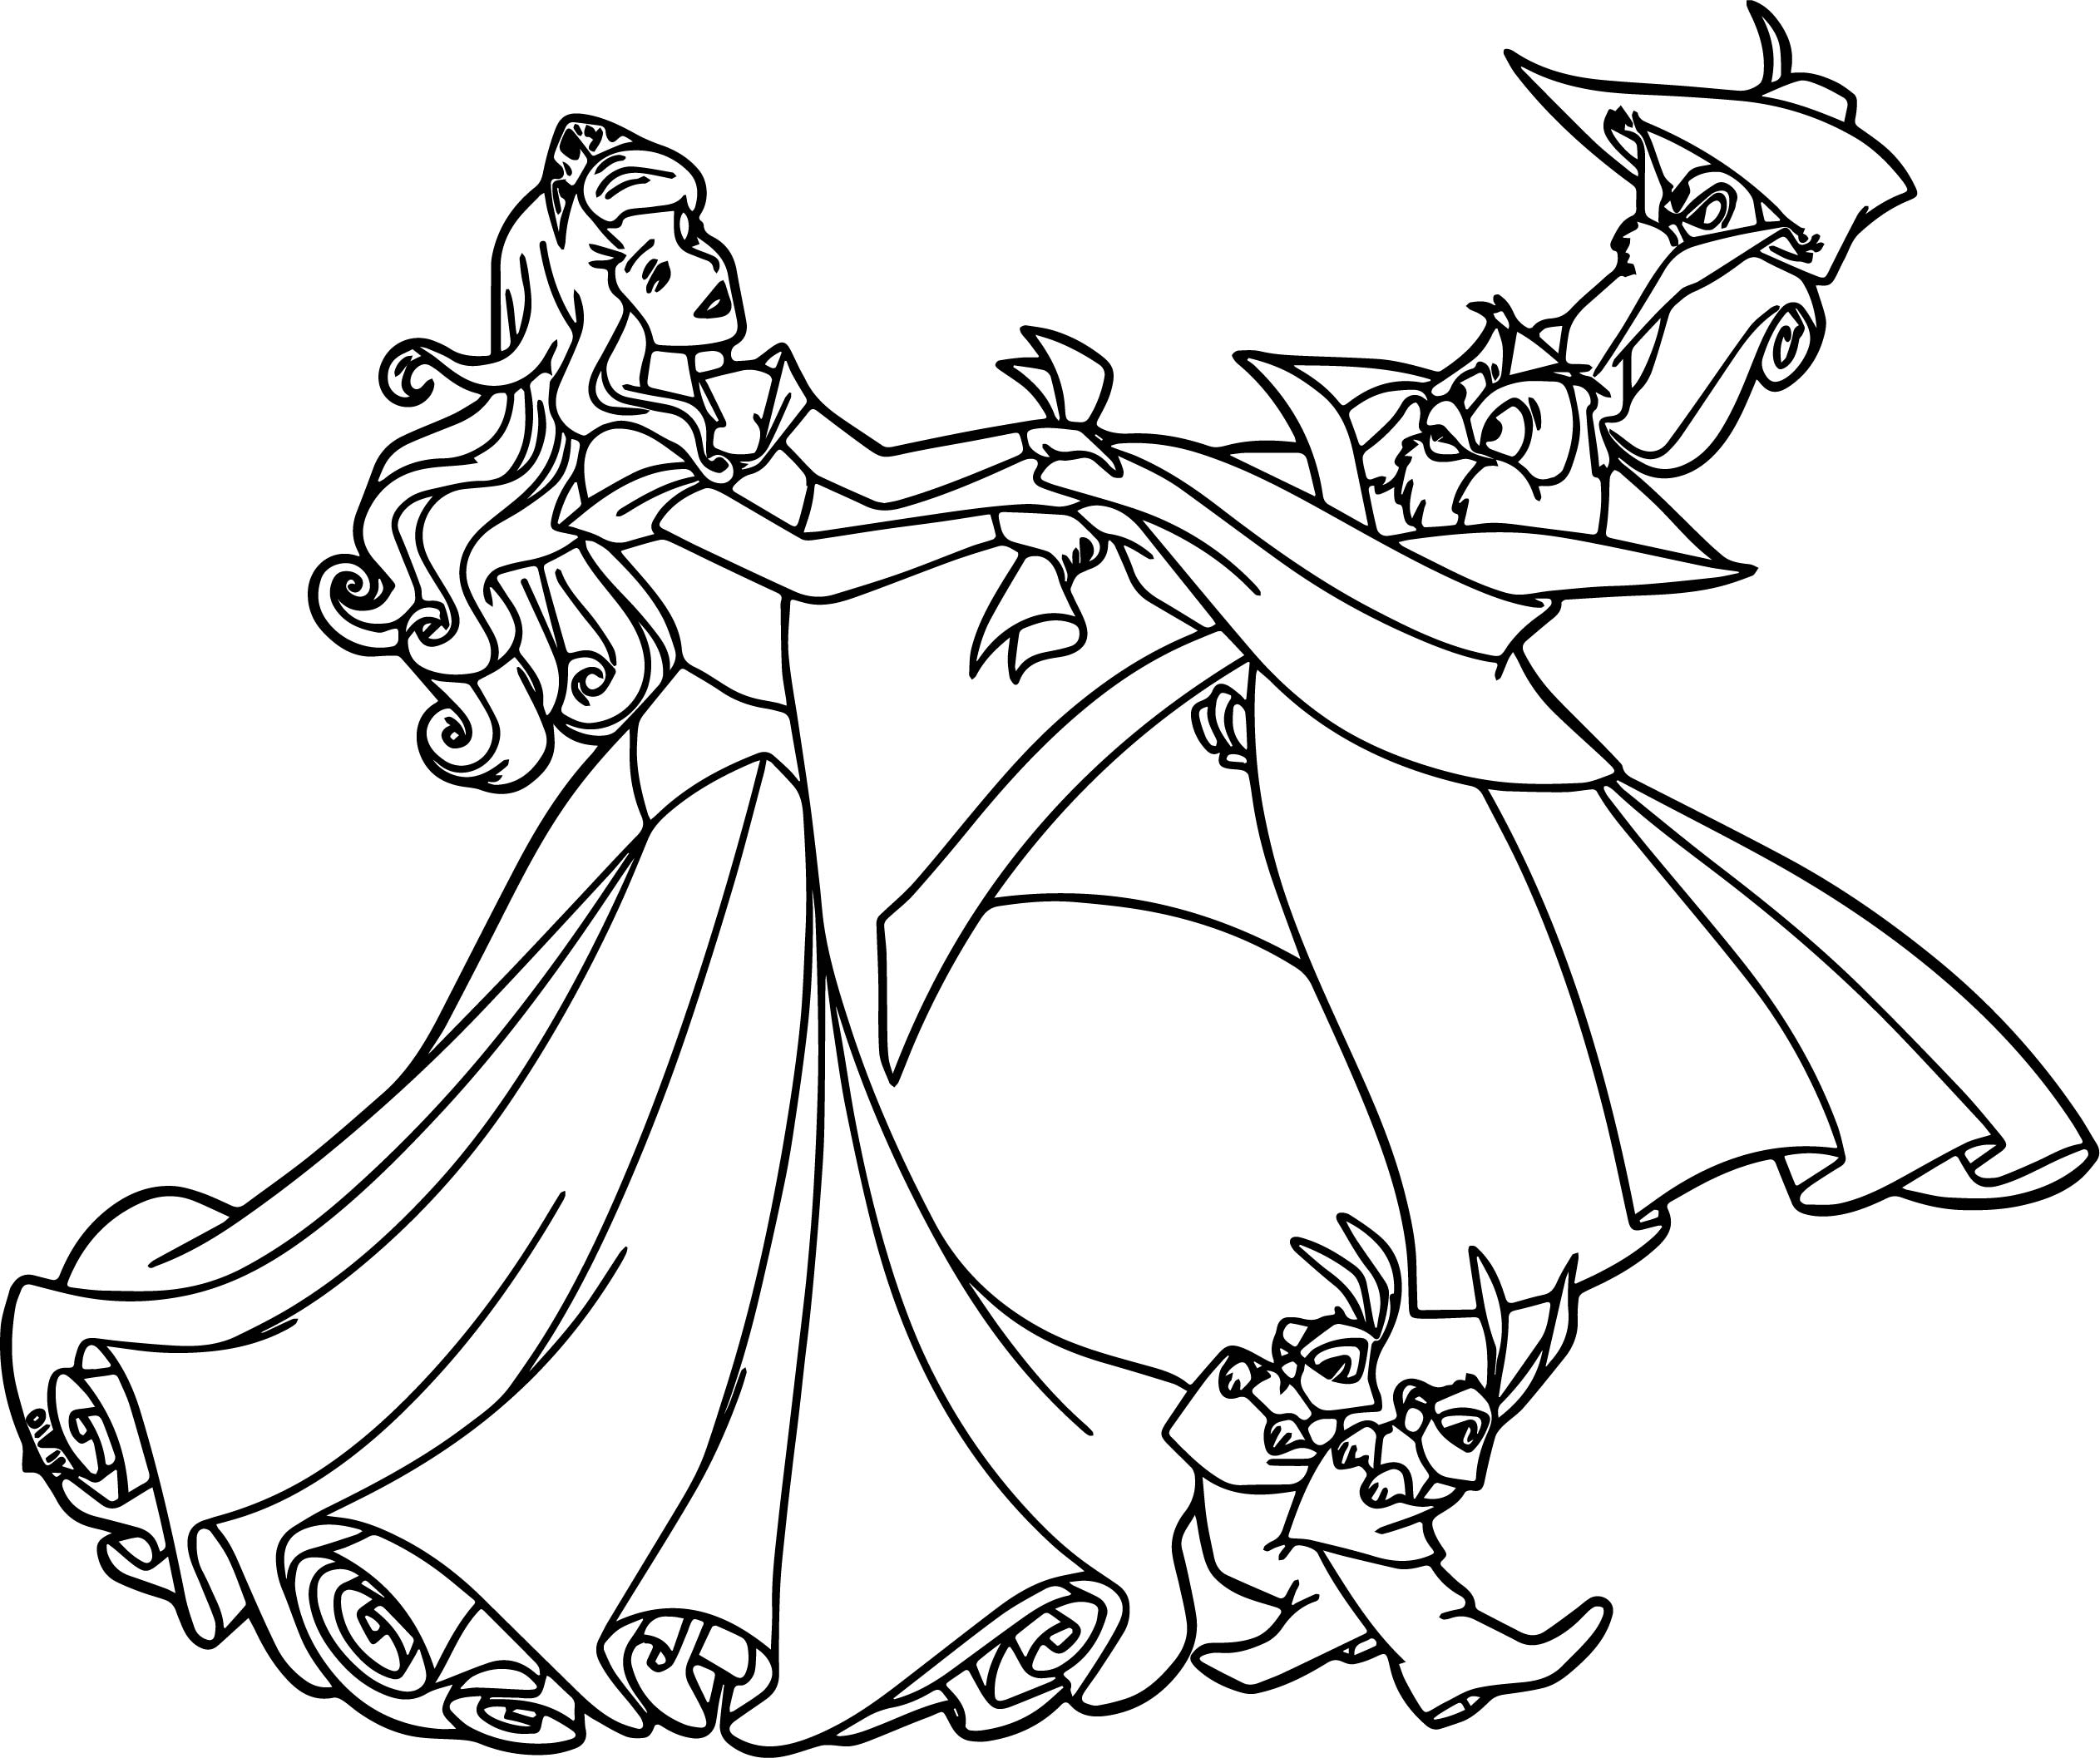 Aurora Animals Cartoonized Coloring Page